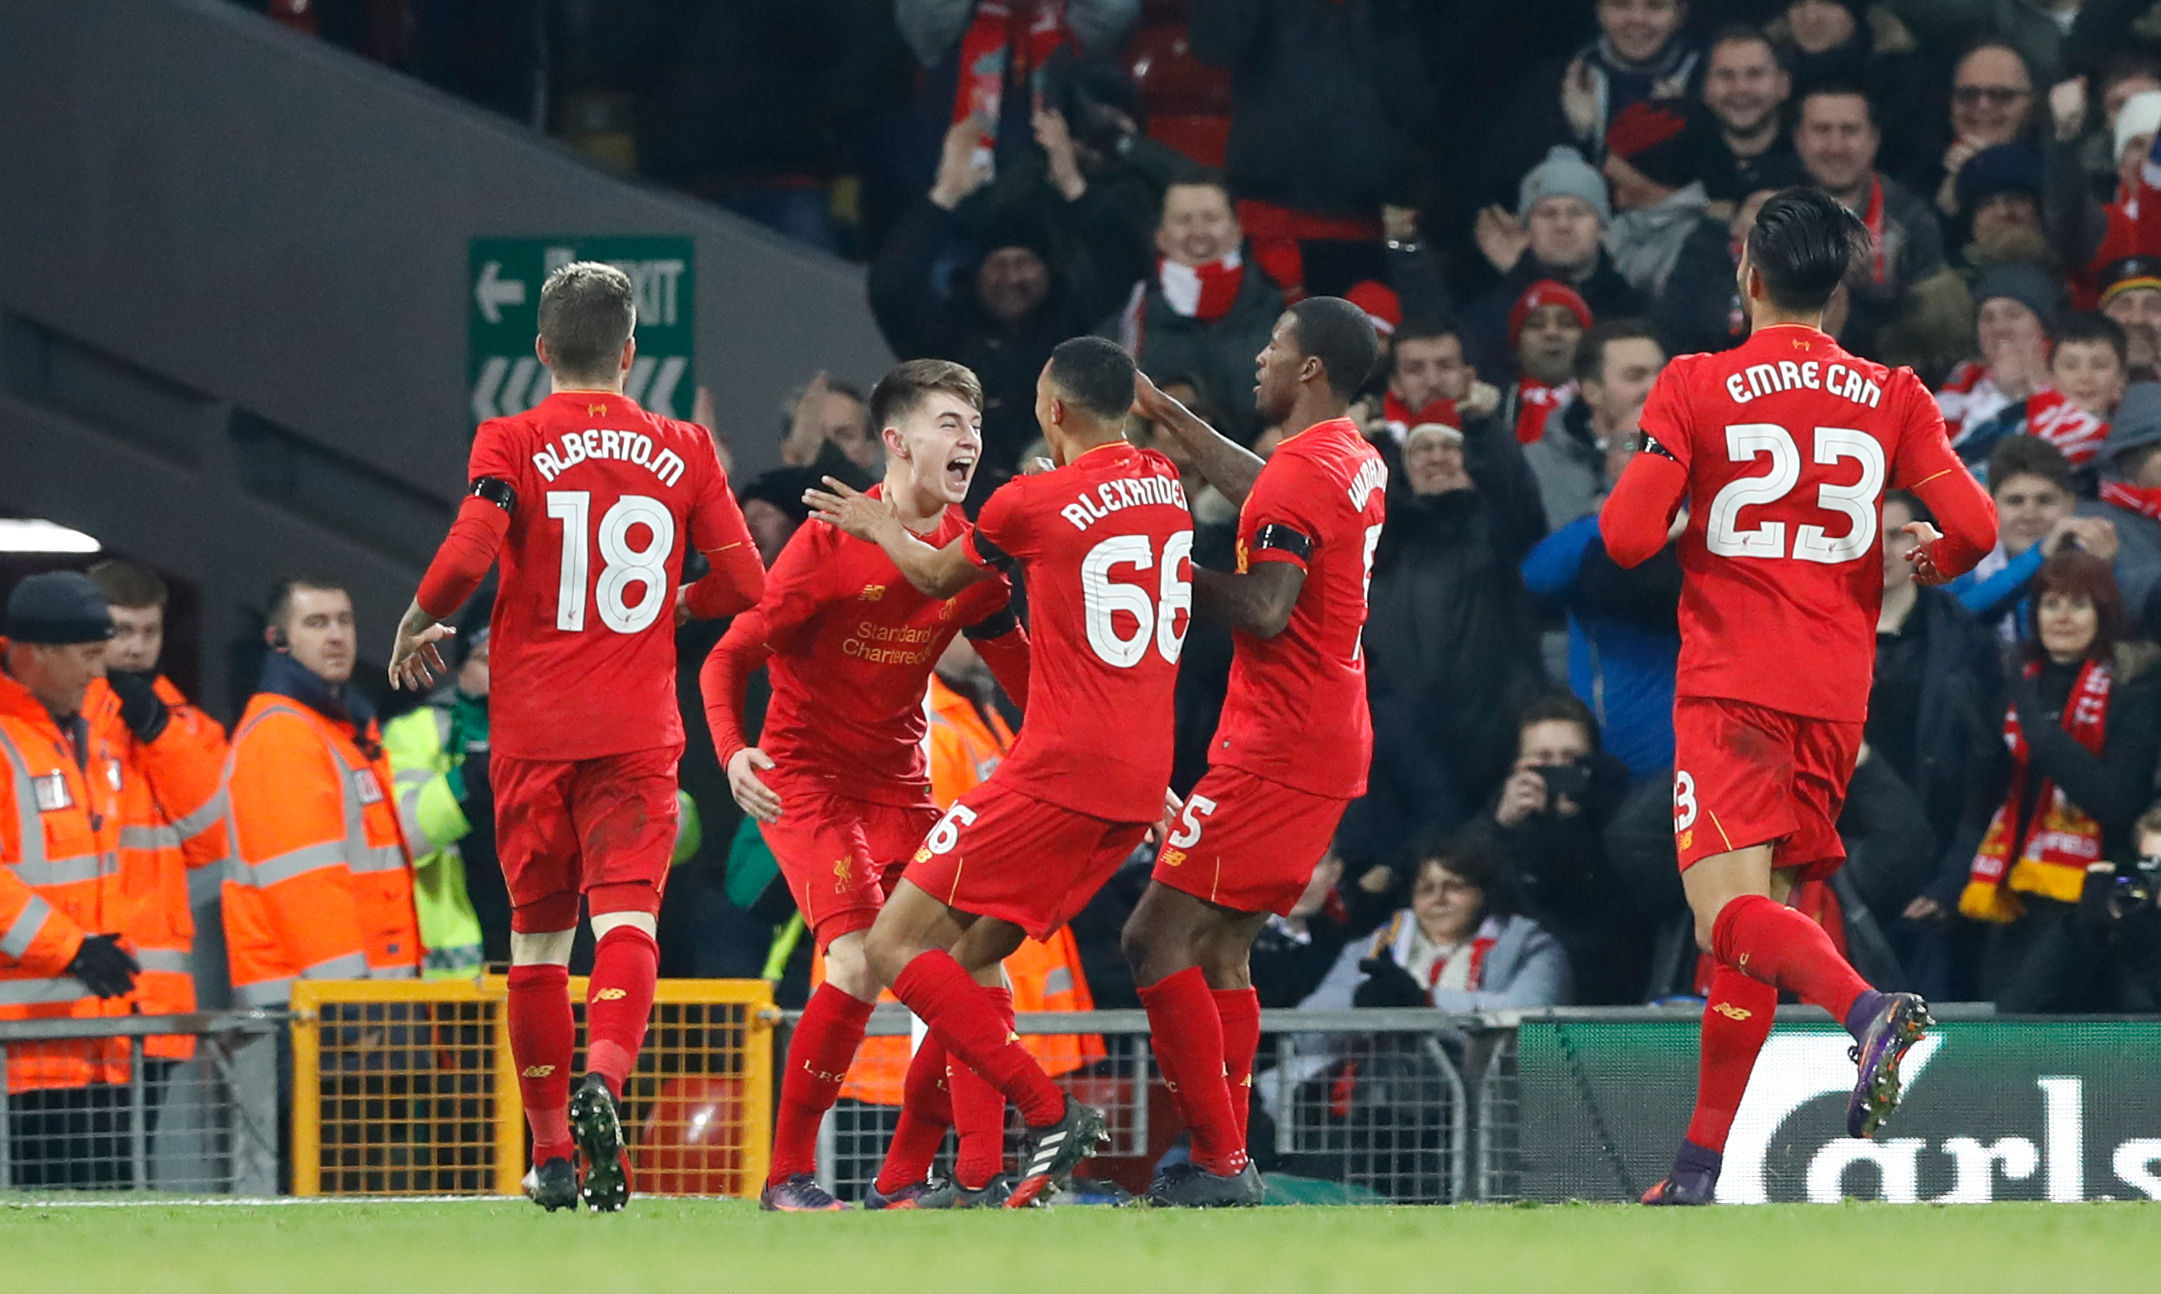 Liverpool's Ben Woodburn celebrates scoring his side's second goal during their EFL Cup victory over Leeds